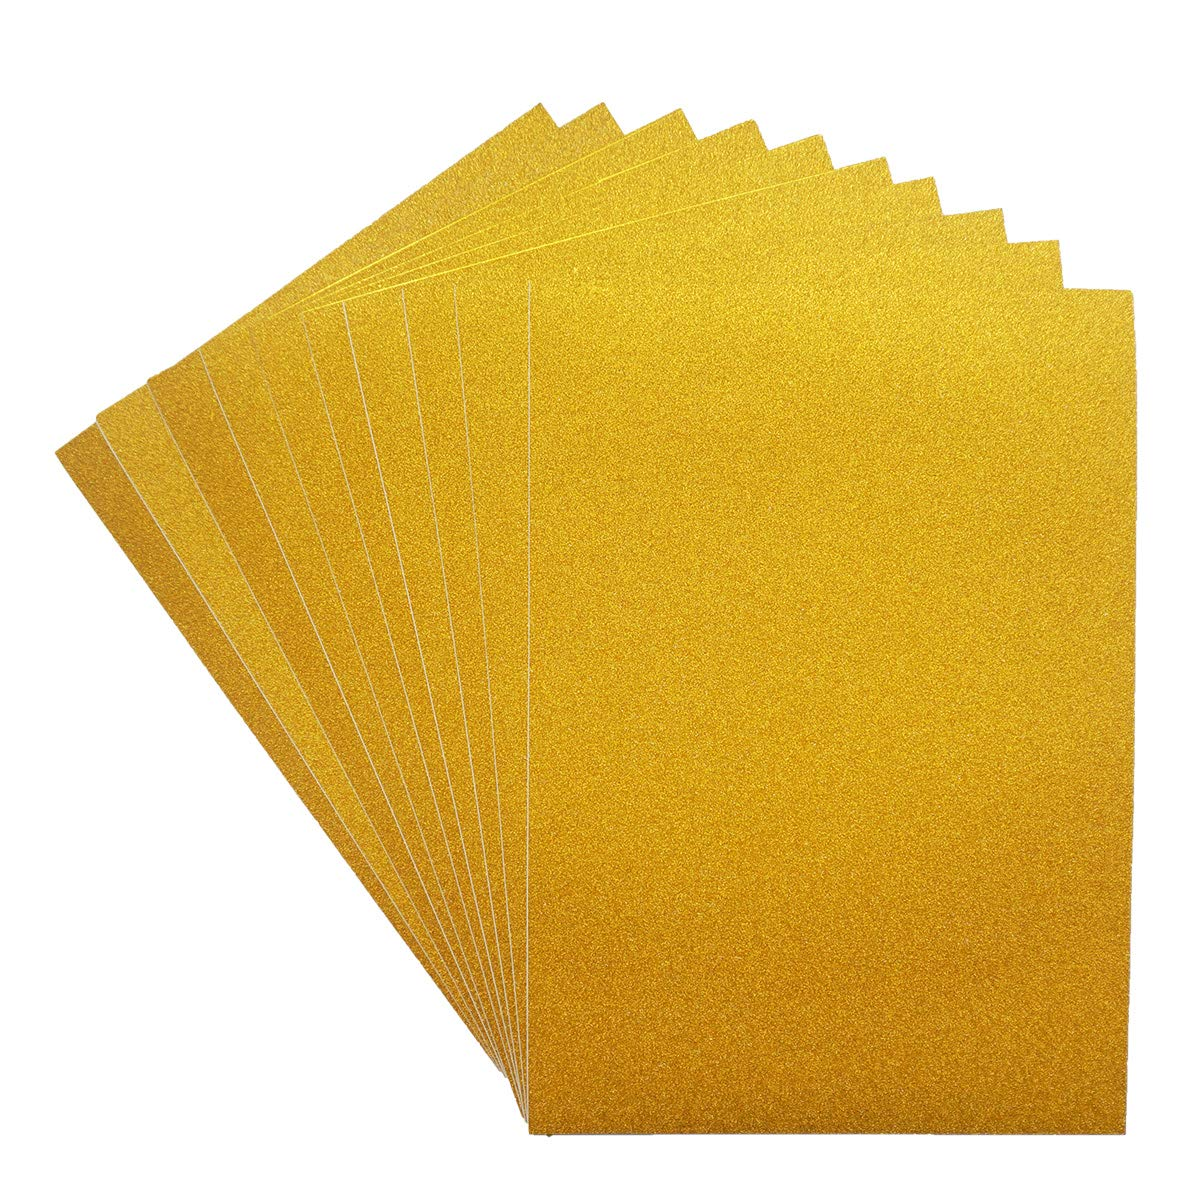 """Misscrafts Adhesive Sheets 10 Sheets Adhesive Glitter Paper 12"""" x 8"""" Sparkling Sticker for DIY Craft Sign Metallic Colors Gold"""